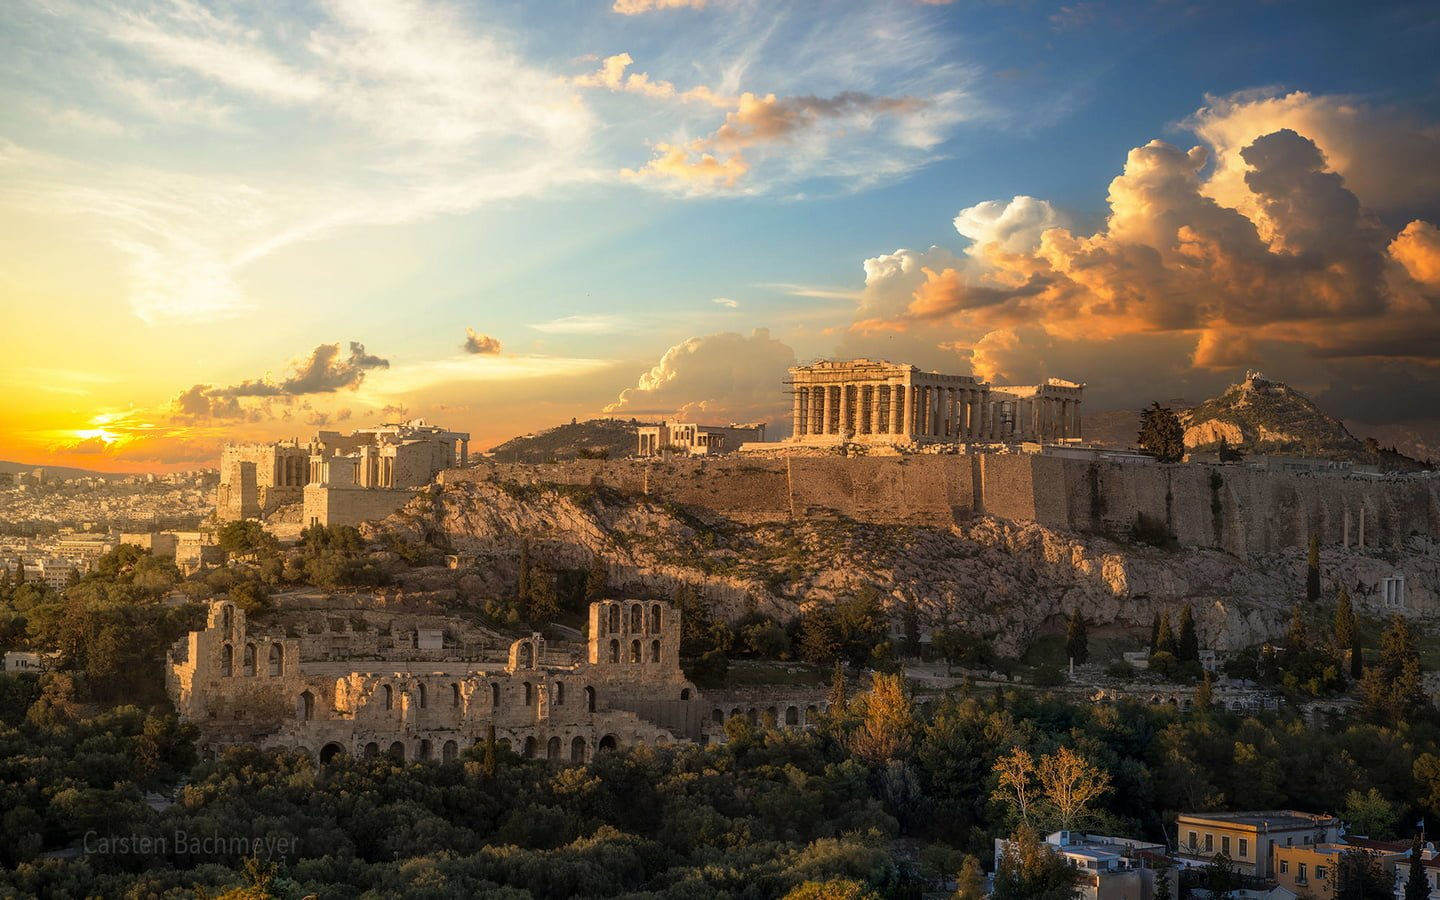 The golden age of Athens, Acropolis Greece